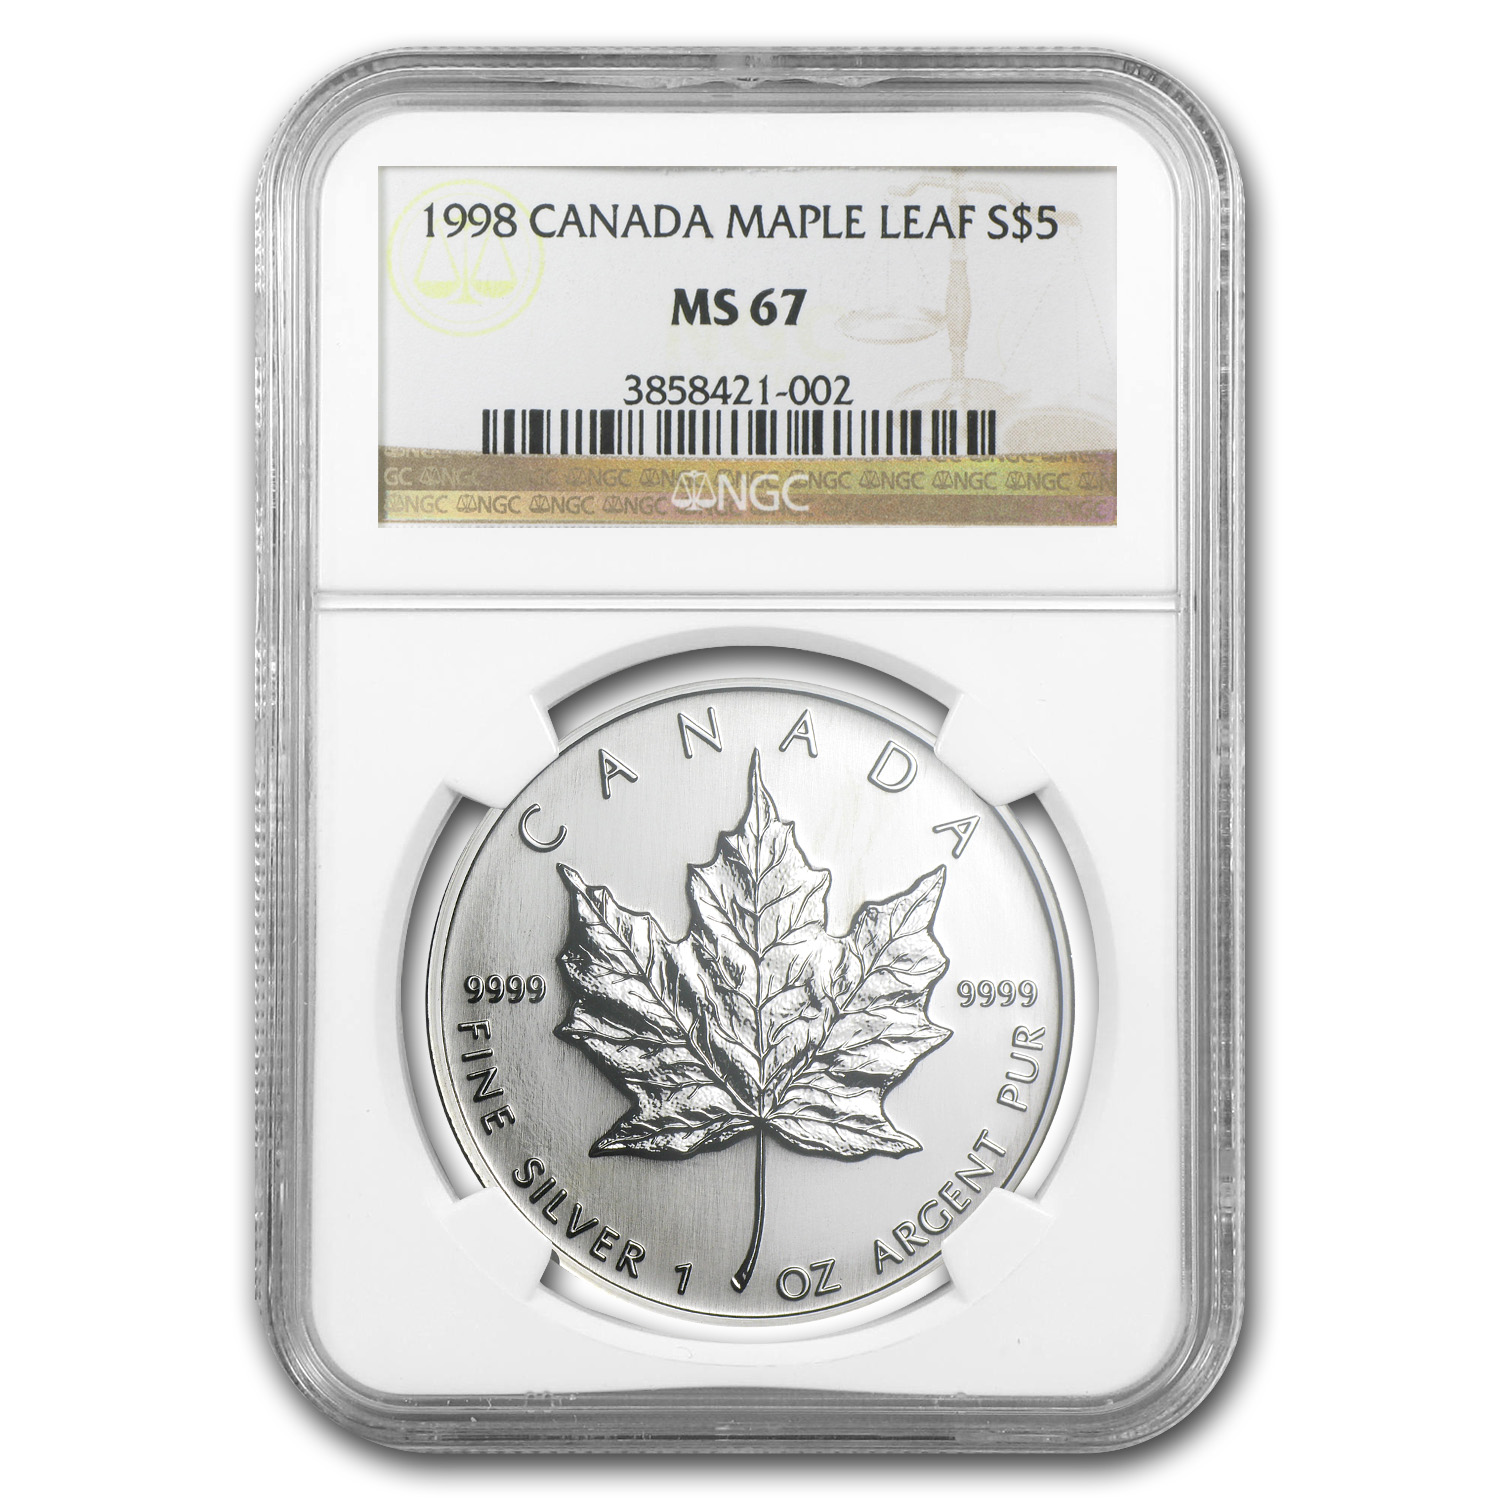 1998 1 oz Silver Canadian Maple Leaf MS-67 NGC